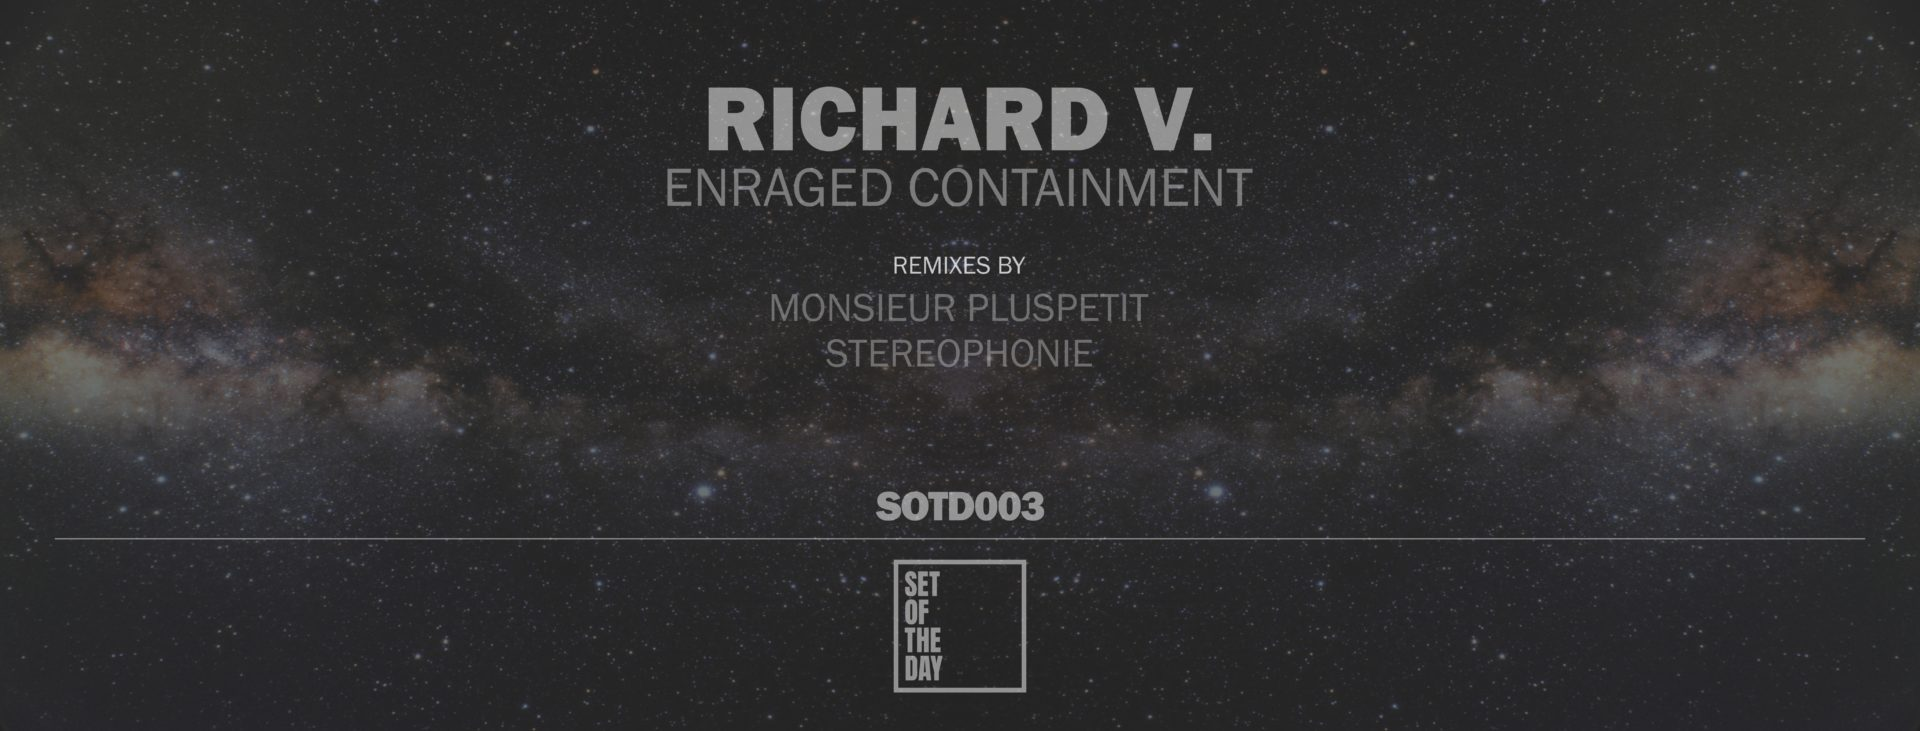 sotd003fb-richard-v-enraged-containment1-1920x731 - Stereophonie